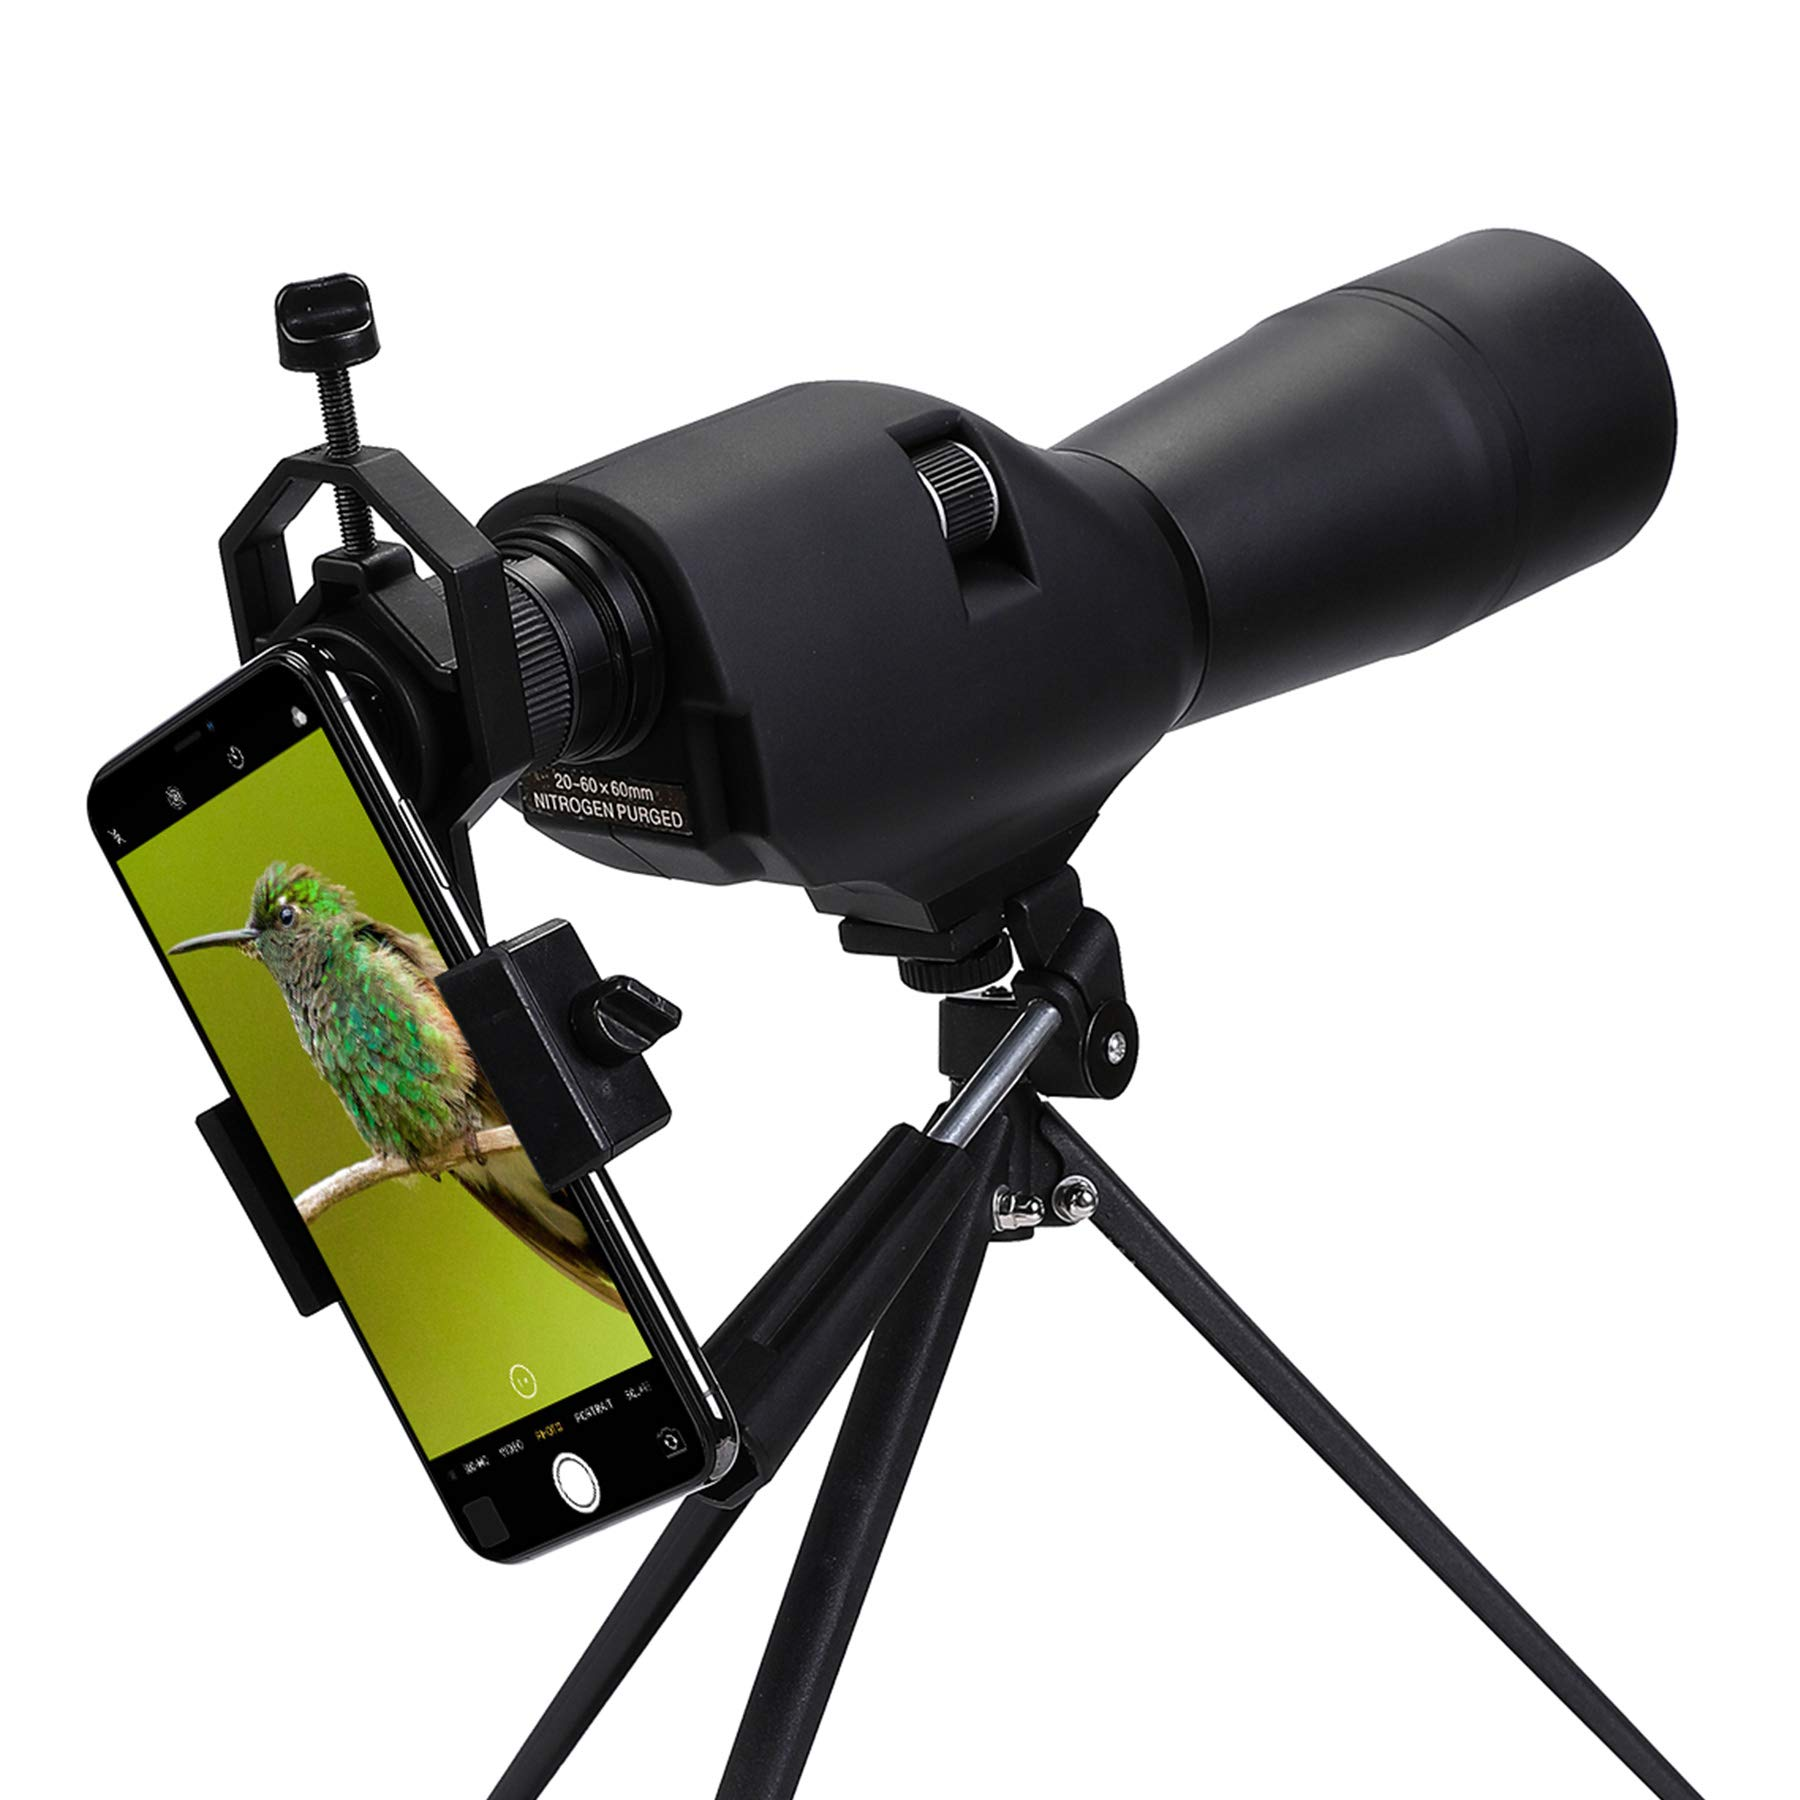 Pinty 20-60x60 Straight Spotting Scope with Tripod, Optics Zoom 36-19m/1000m for Target Shooting Bird Watching Hunting W/Phone Holder, Waterproof